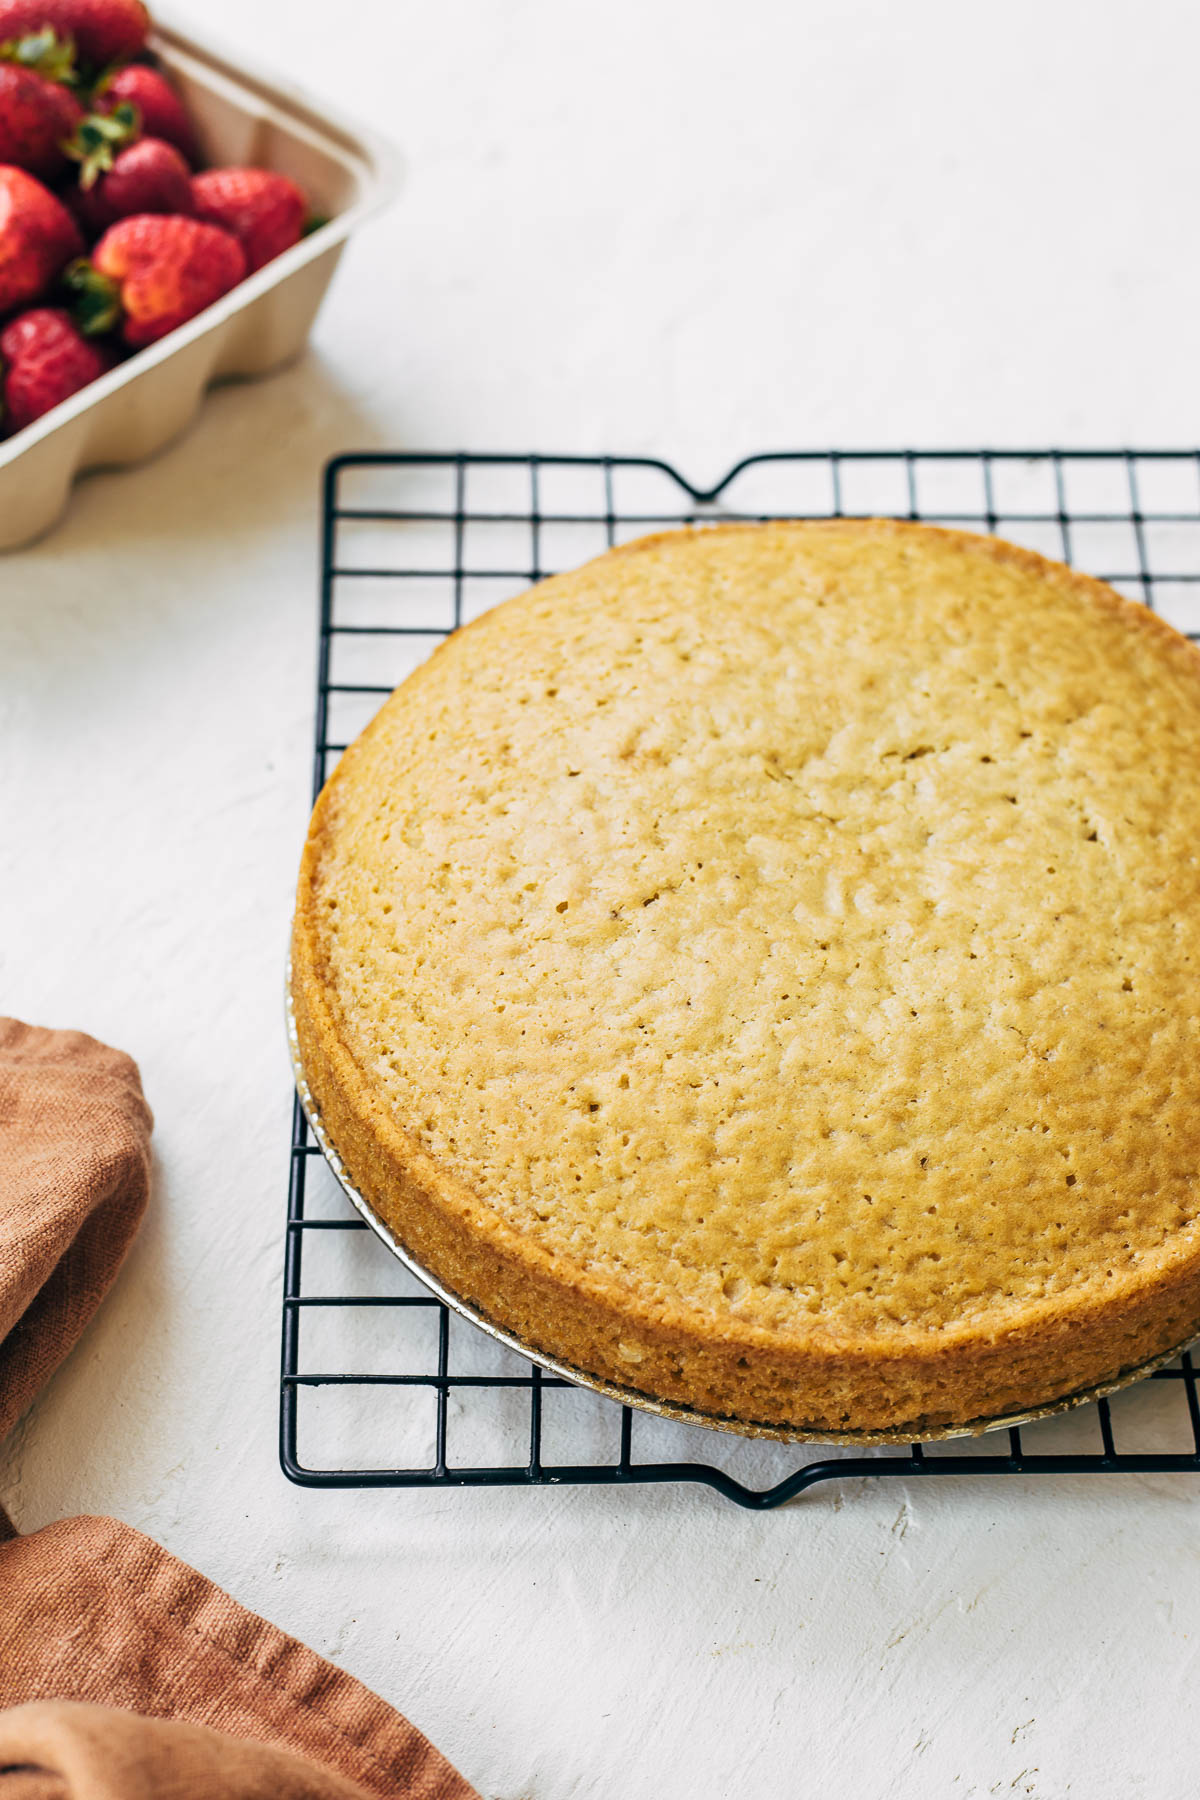 A baked round cake on a square cooling rack.